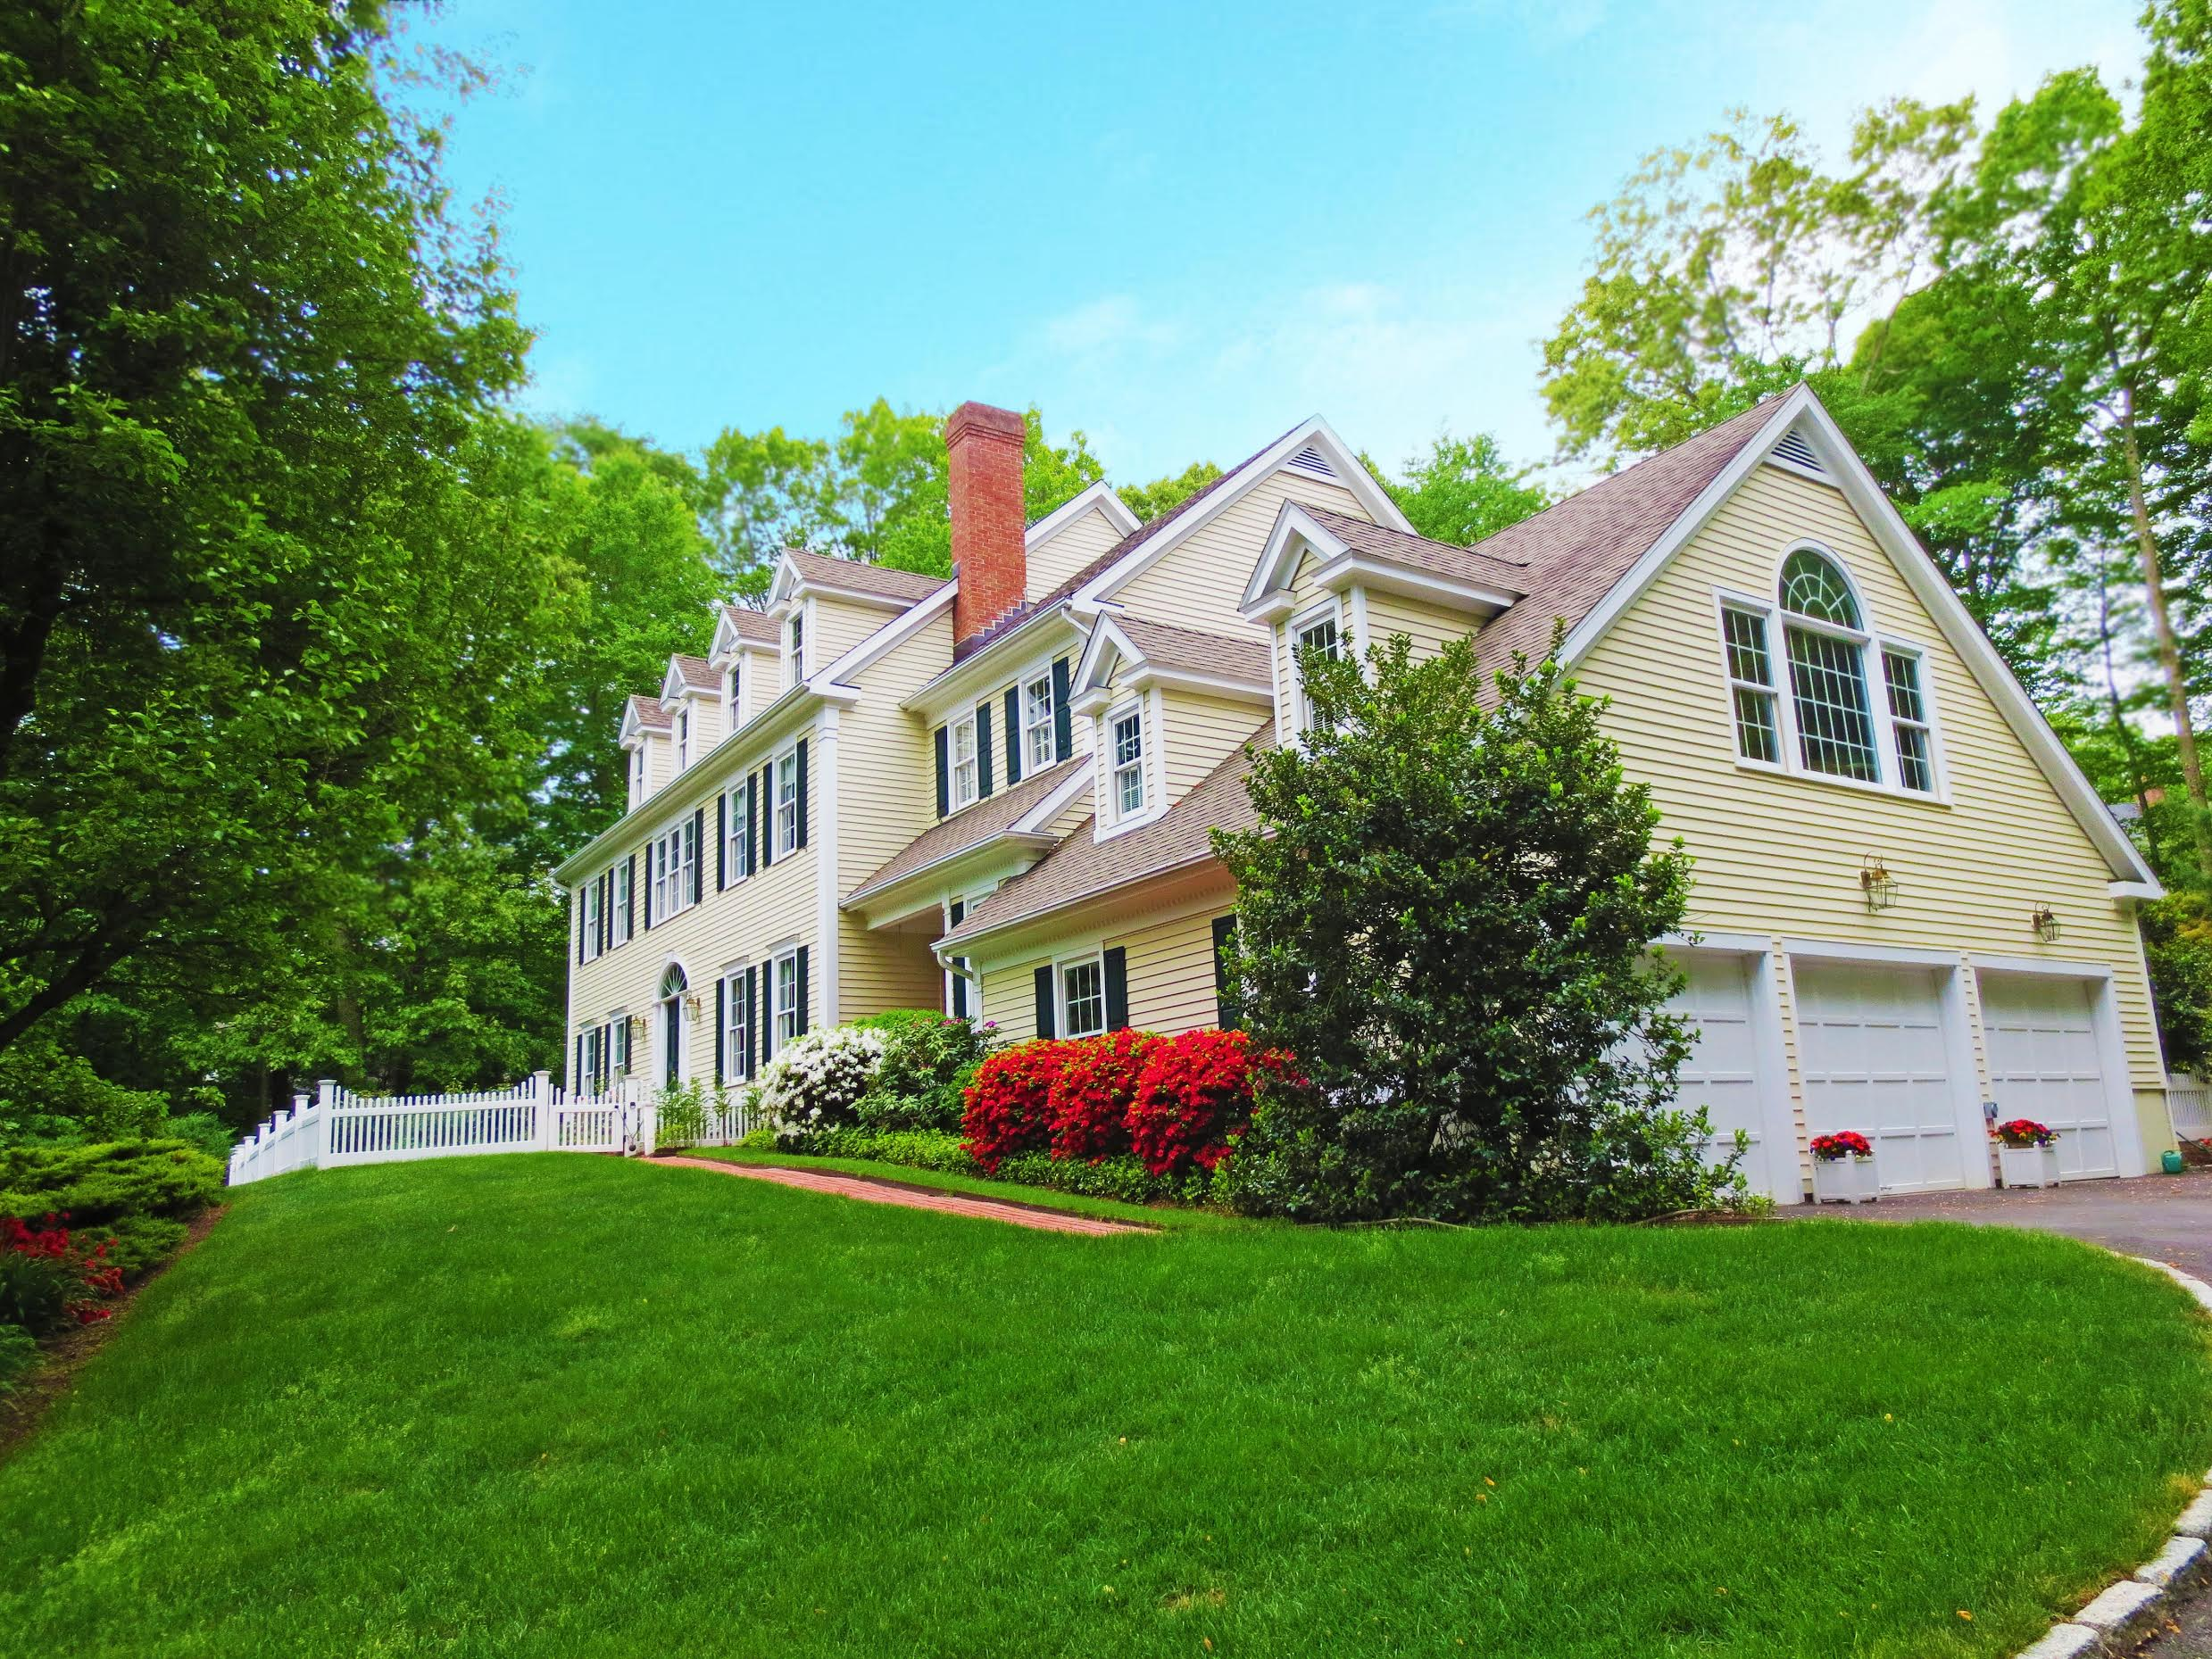 Single Family Home for Sale at Enjoy Every Indulgence! 152 Cheesespring Road Wilton, Connecticut 06897 United States